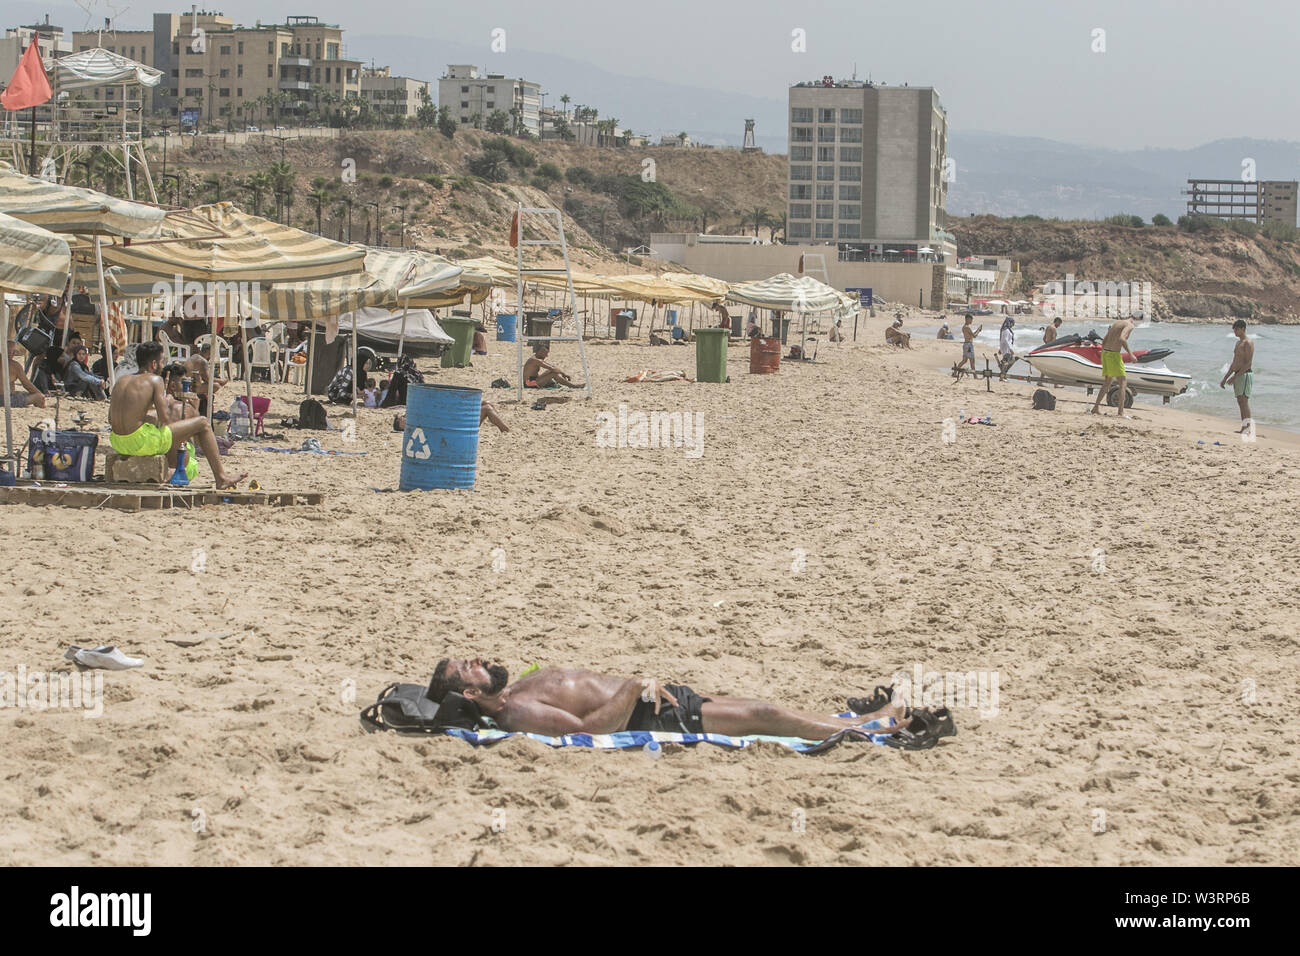 Beirut, Lebanon. 17th July, 2019. A man sunbathes at the beach in Beirut during a sweltering day as temperatures exceed 40 degrees Celsius. Credit: Amer Ghazzal/SOPA Images/ZUMA Wire/Alamy Live News - Stock Image